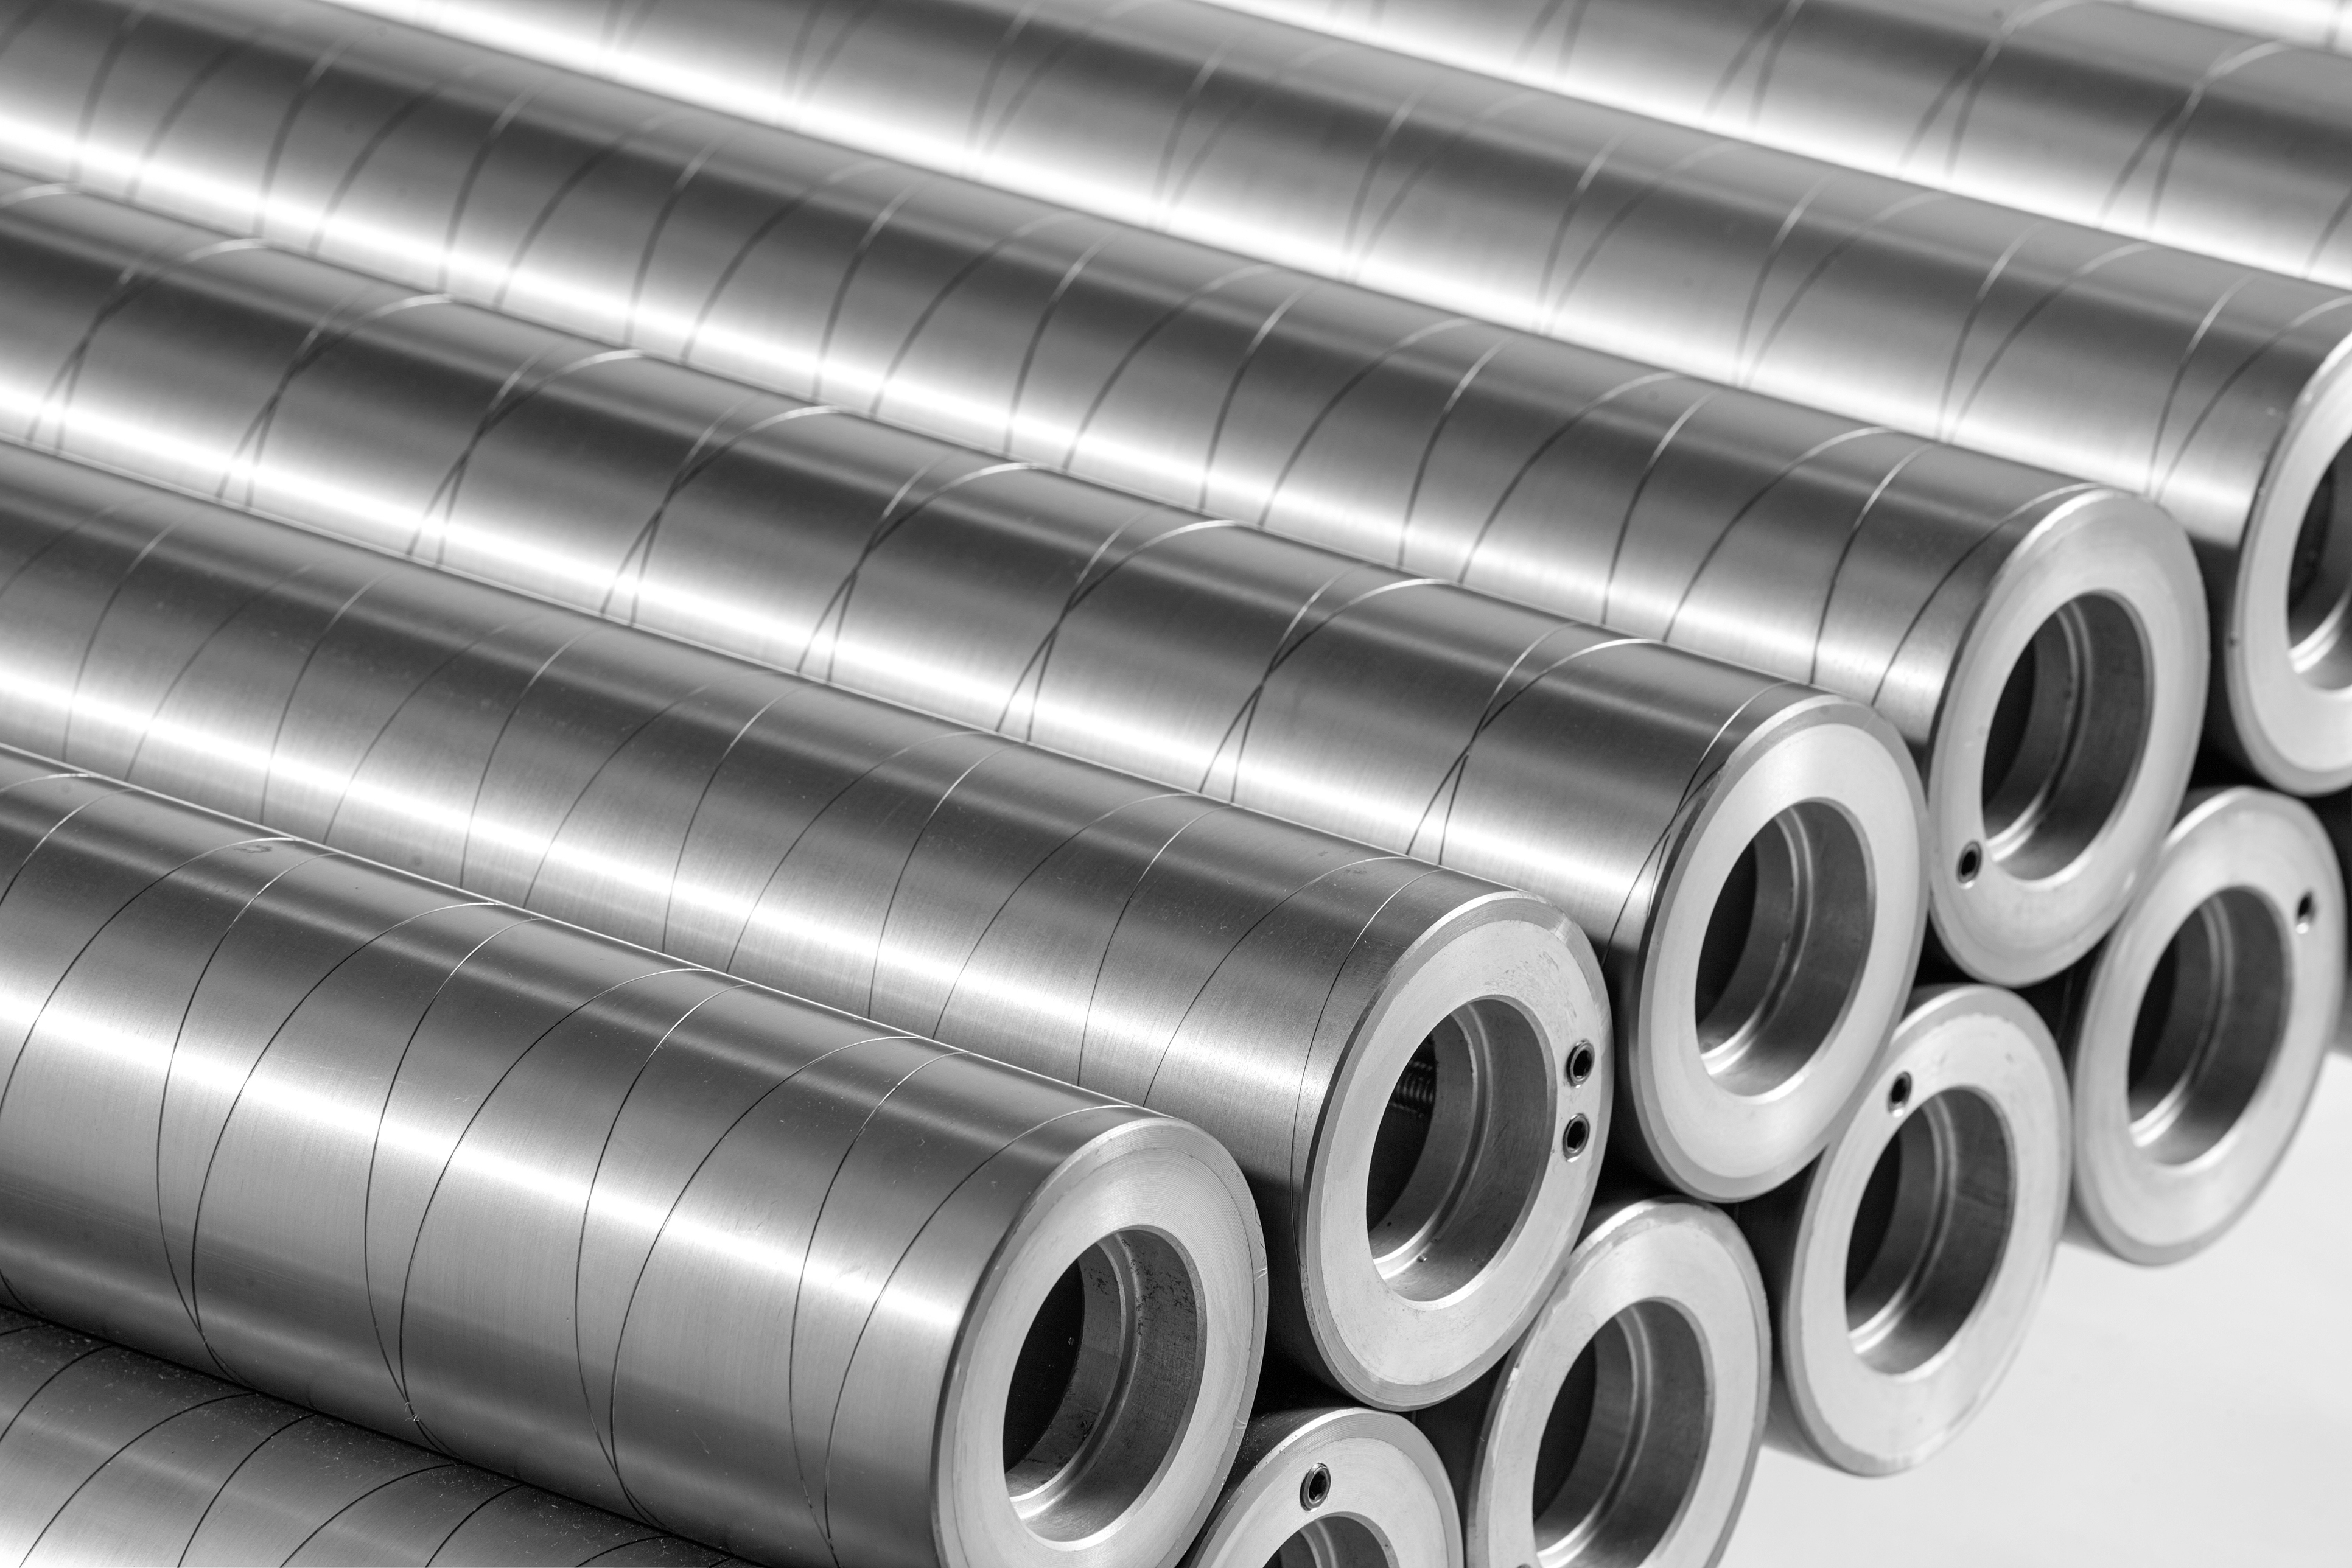 Buy Round Bar Steel | Aluminum, Stainless Steel & More